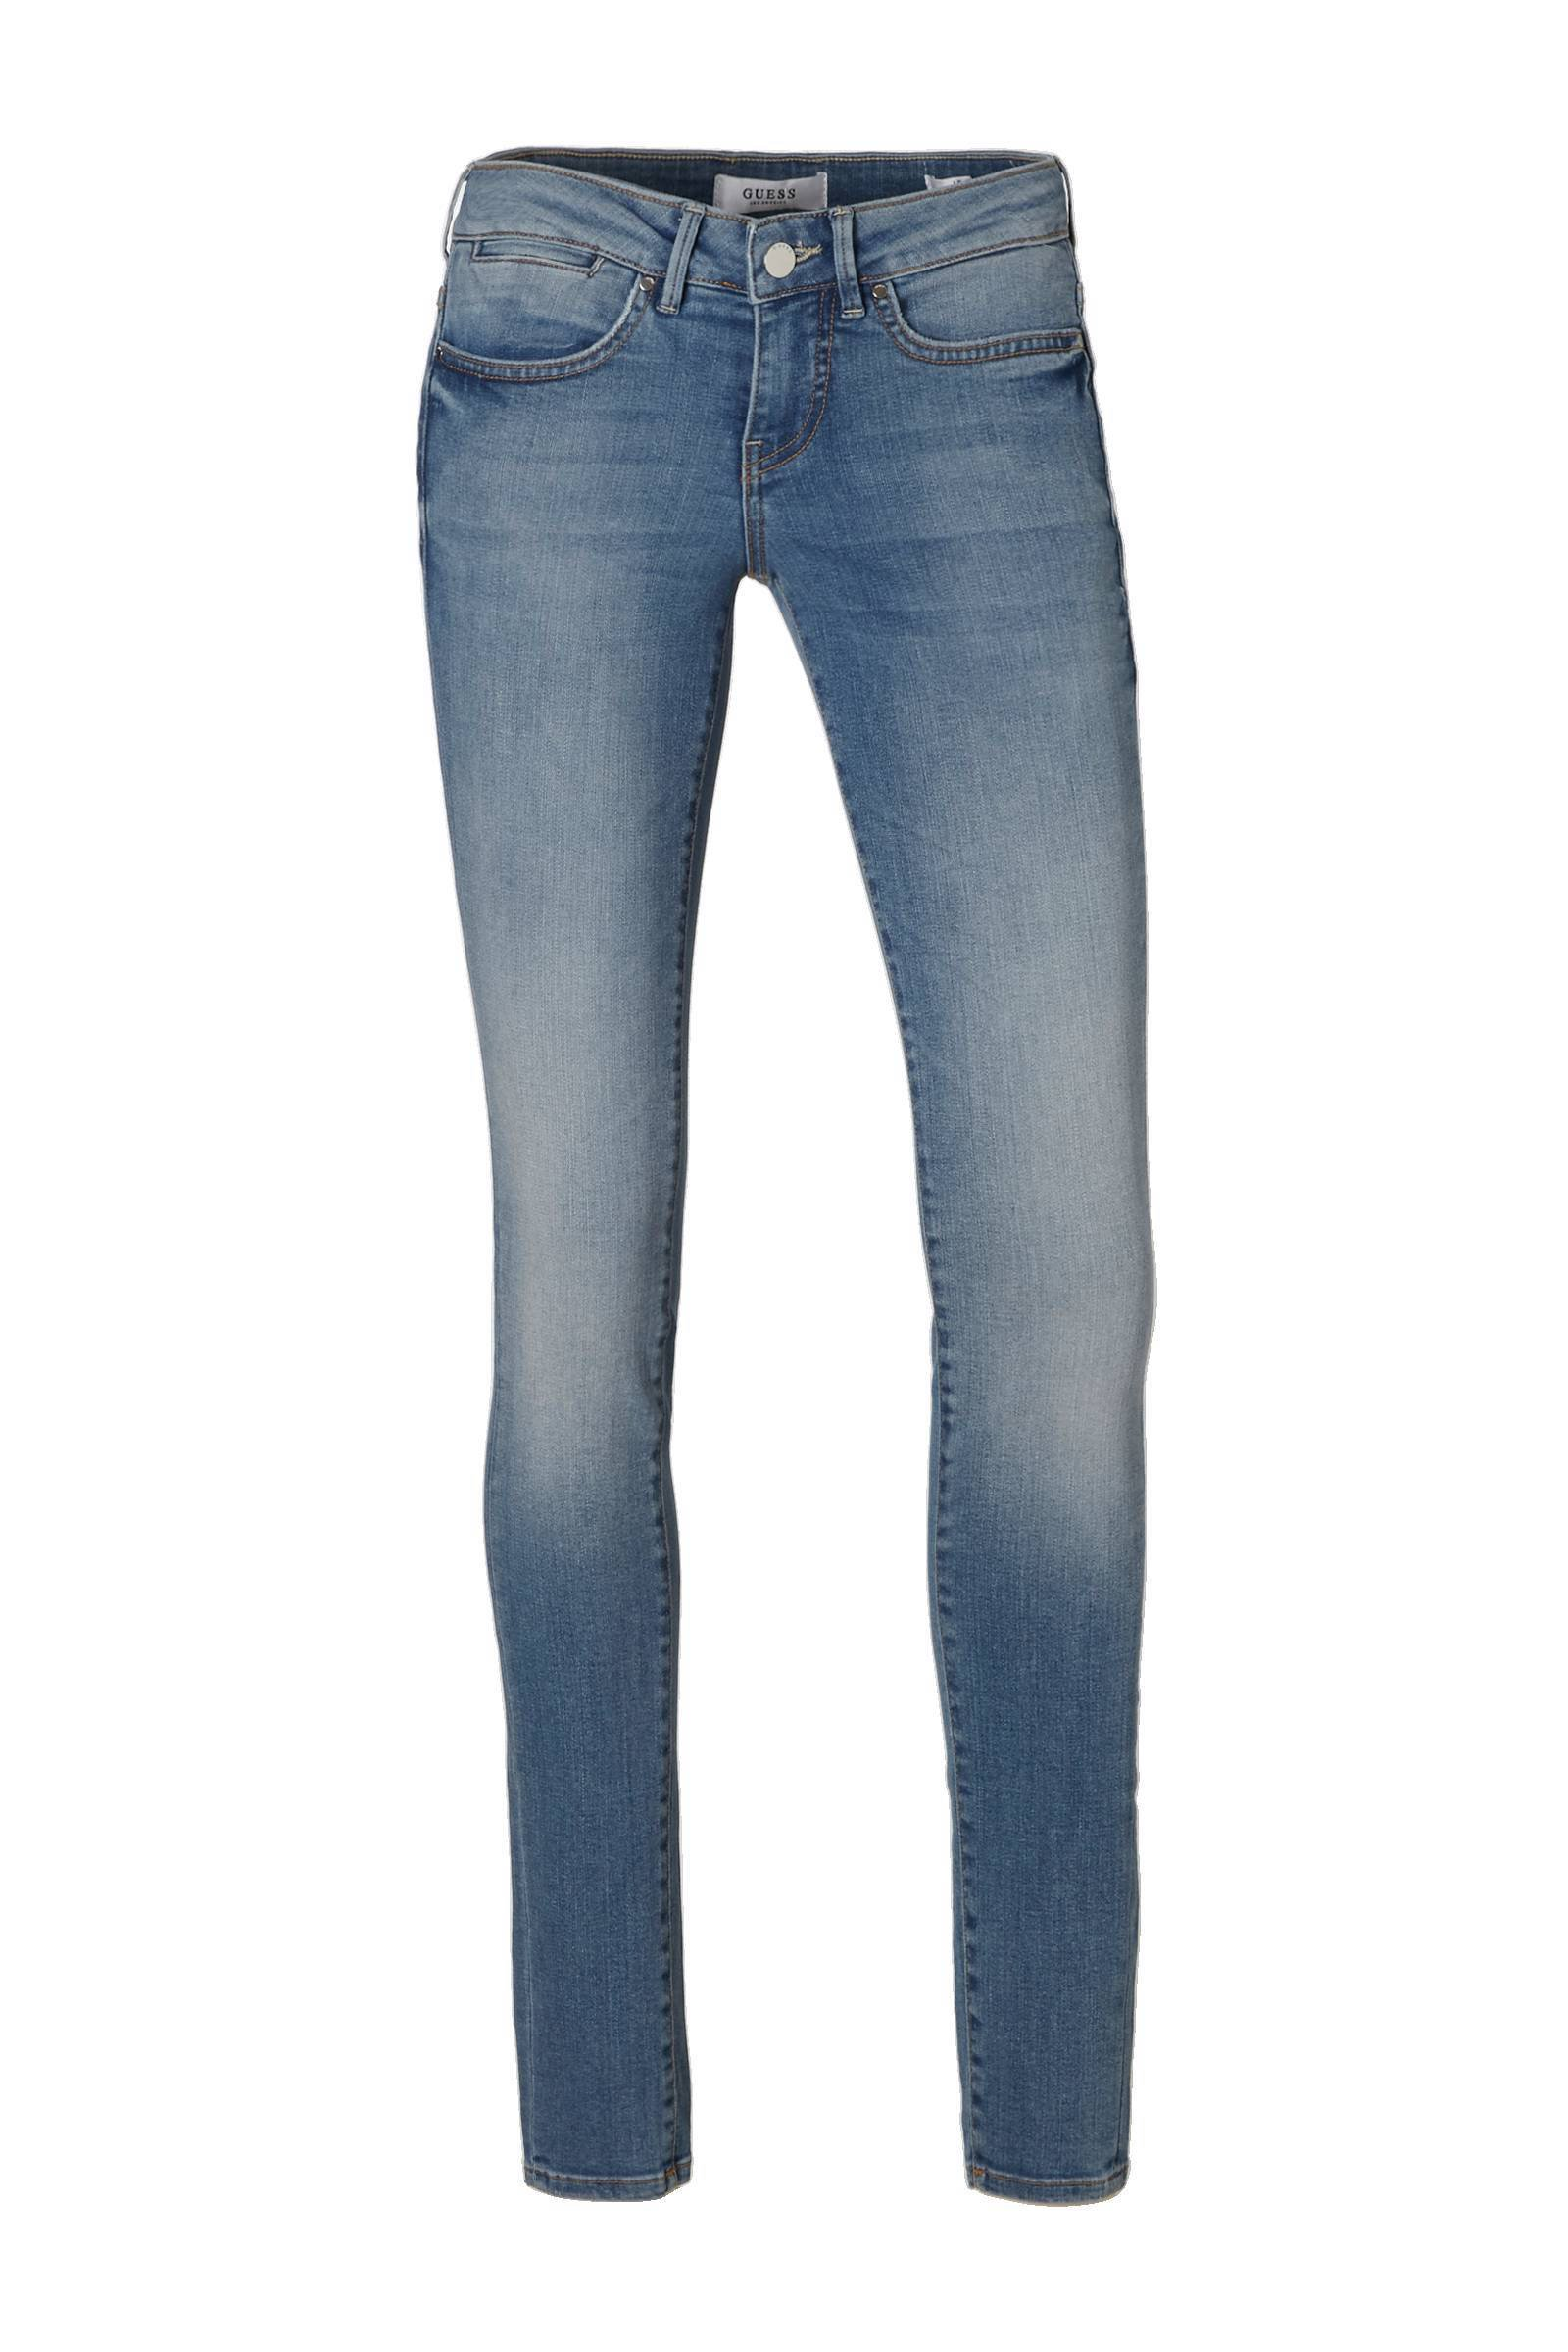 GUESS low waist ultra skinny fit jeans | wehkamp